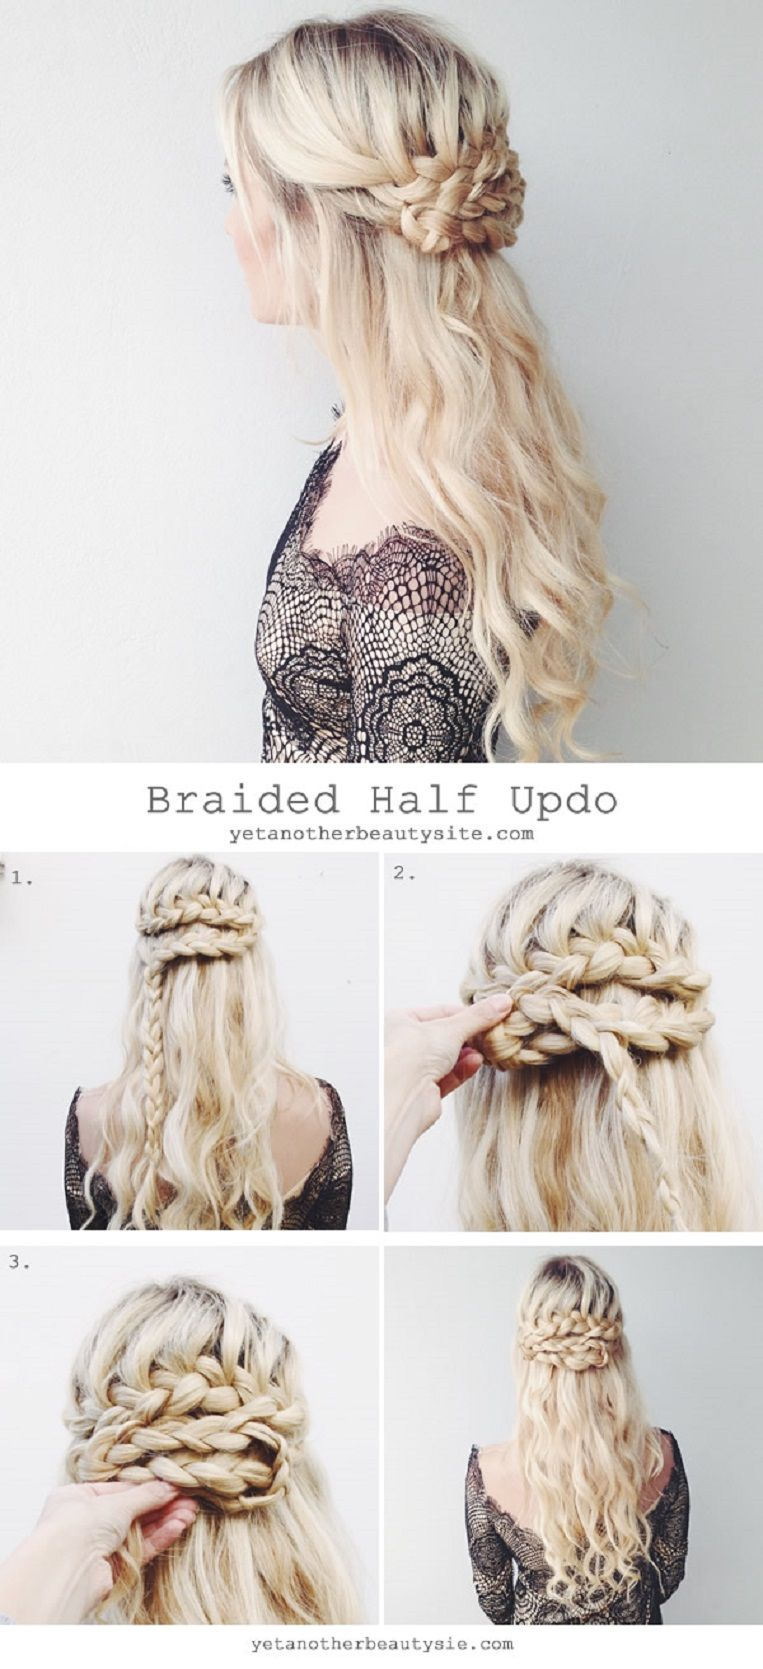 Braided Half Updo - 16 Heatless DIY Hairstyles To Get You Through ...